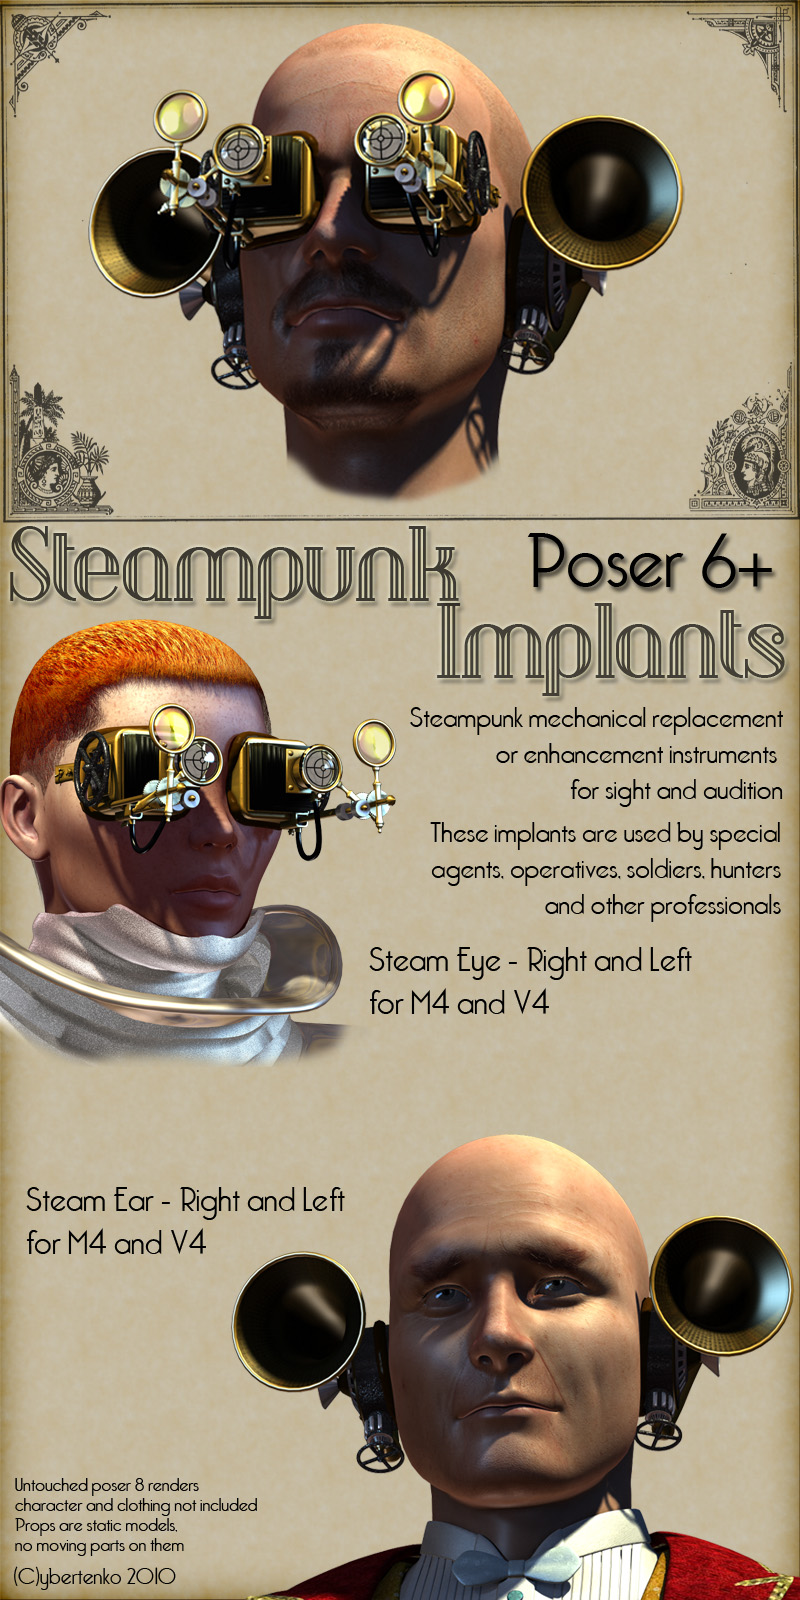 Steampunk Implants